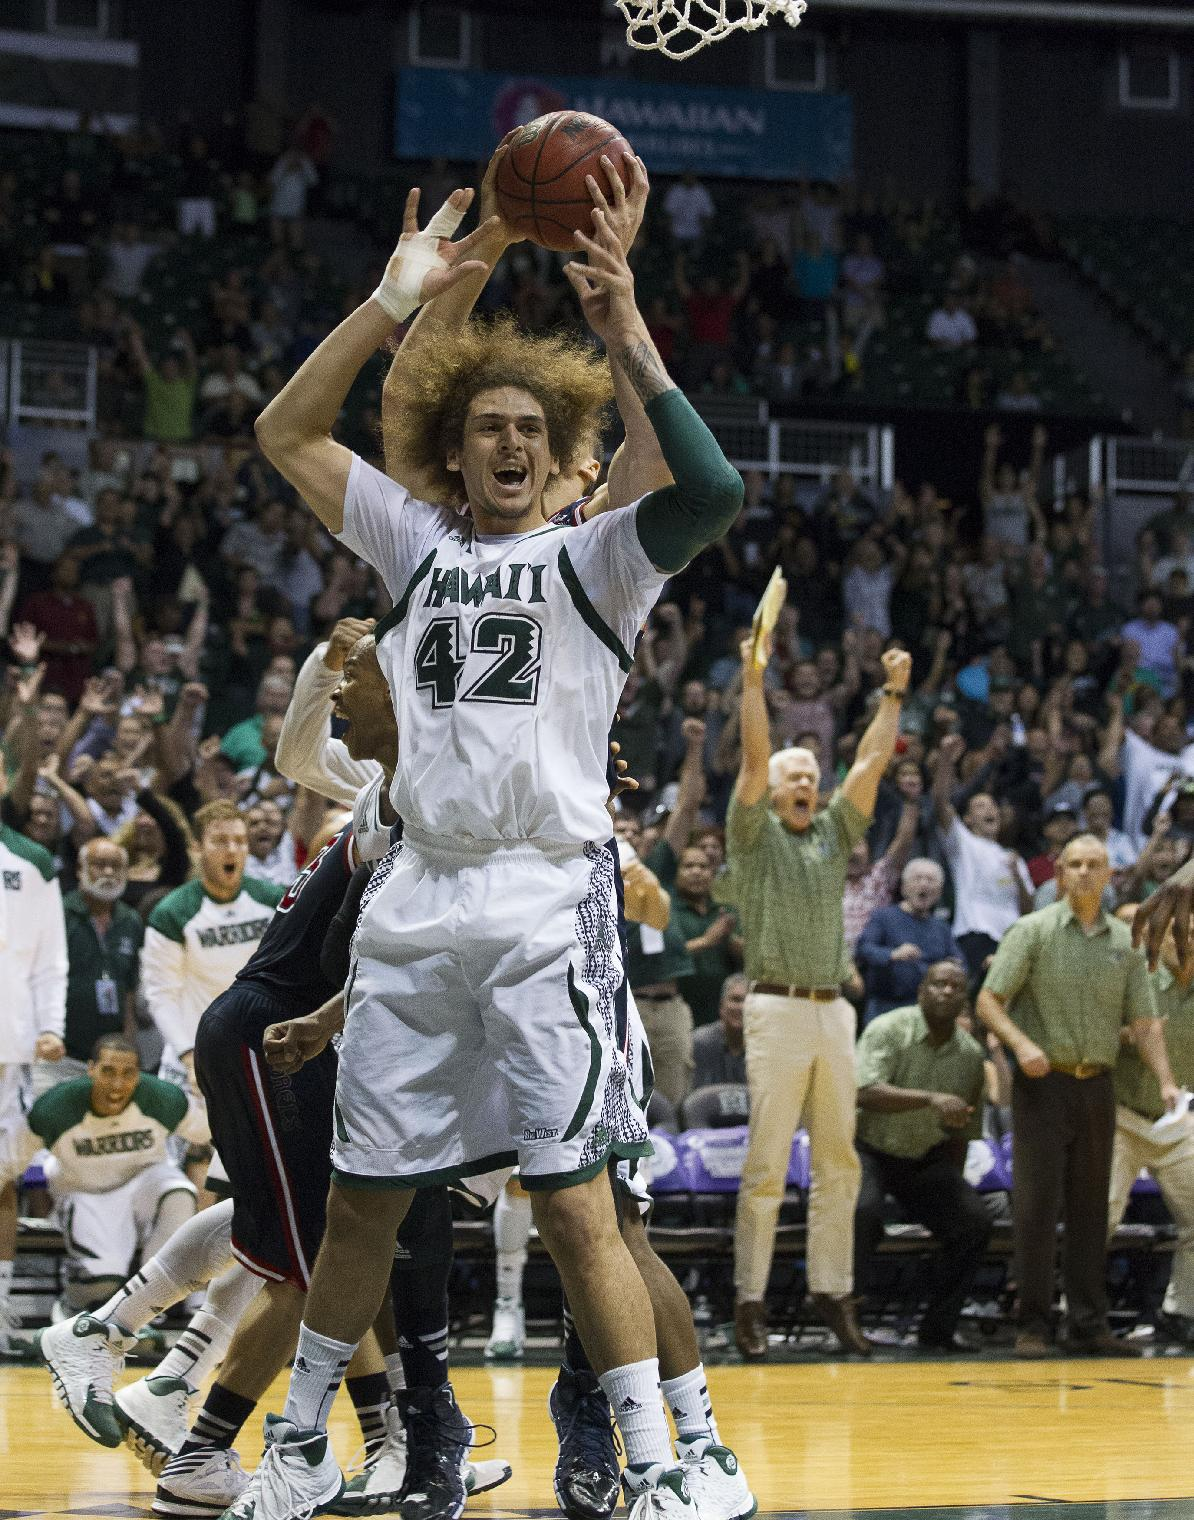 Hawaii forward Isaac Fotu (42) and the Hawaii bench react after Hawaii's Christian Standhardinger makes the game winning shot in the second half of an NCAA college basketball game at the Diamond Head Classic Monday, Dec. 23, 2013, in Honolulu. Hawaii beat Saint Mary's 76-74